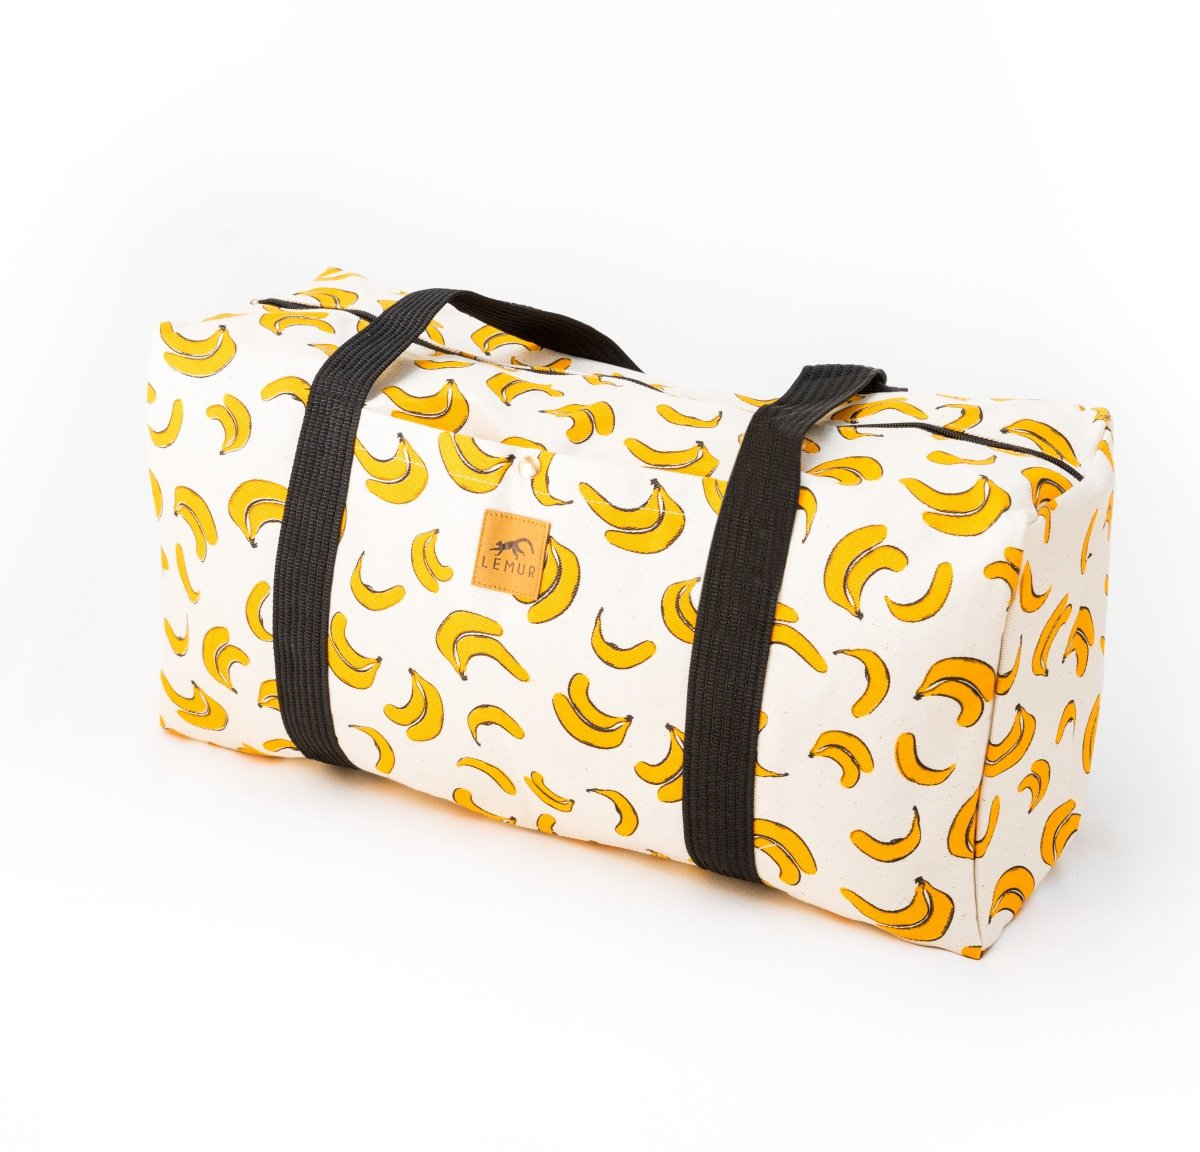 Canvas Duffel Bag - 20 Liter Gym Tote, Foldable Overnight Travel Weekend Luggage by Lemur Bags (Bananas)